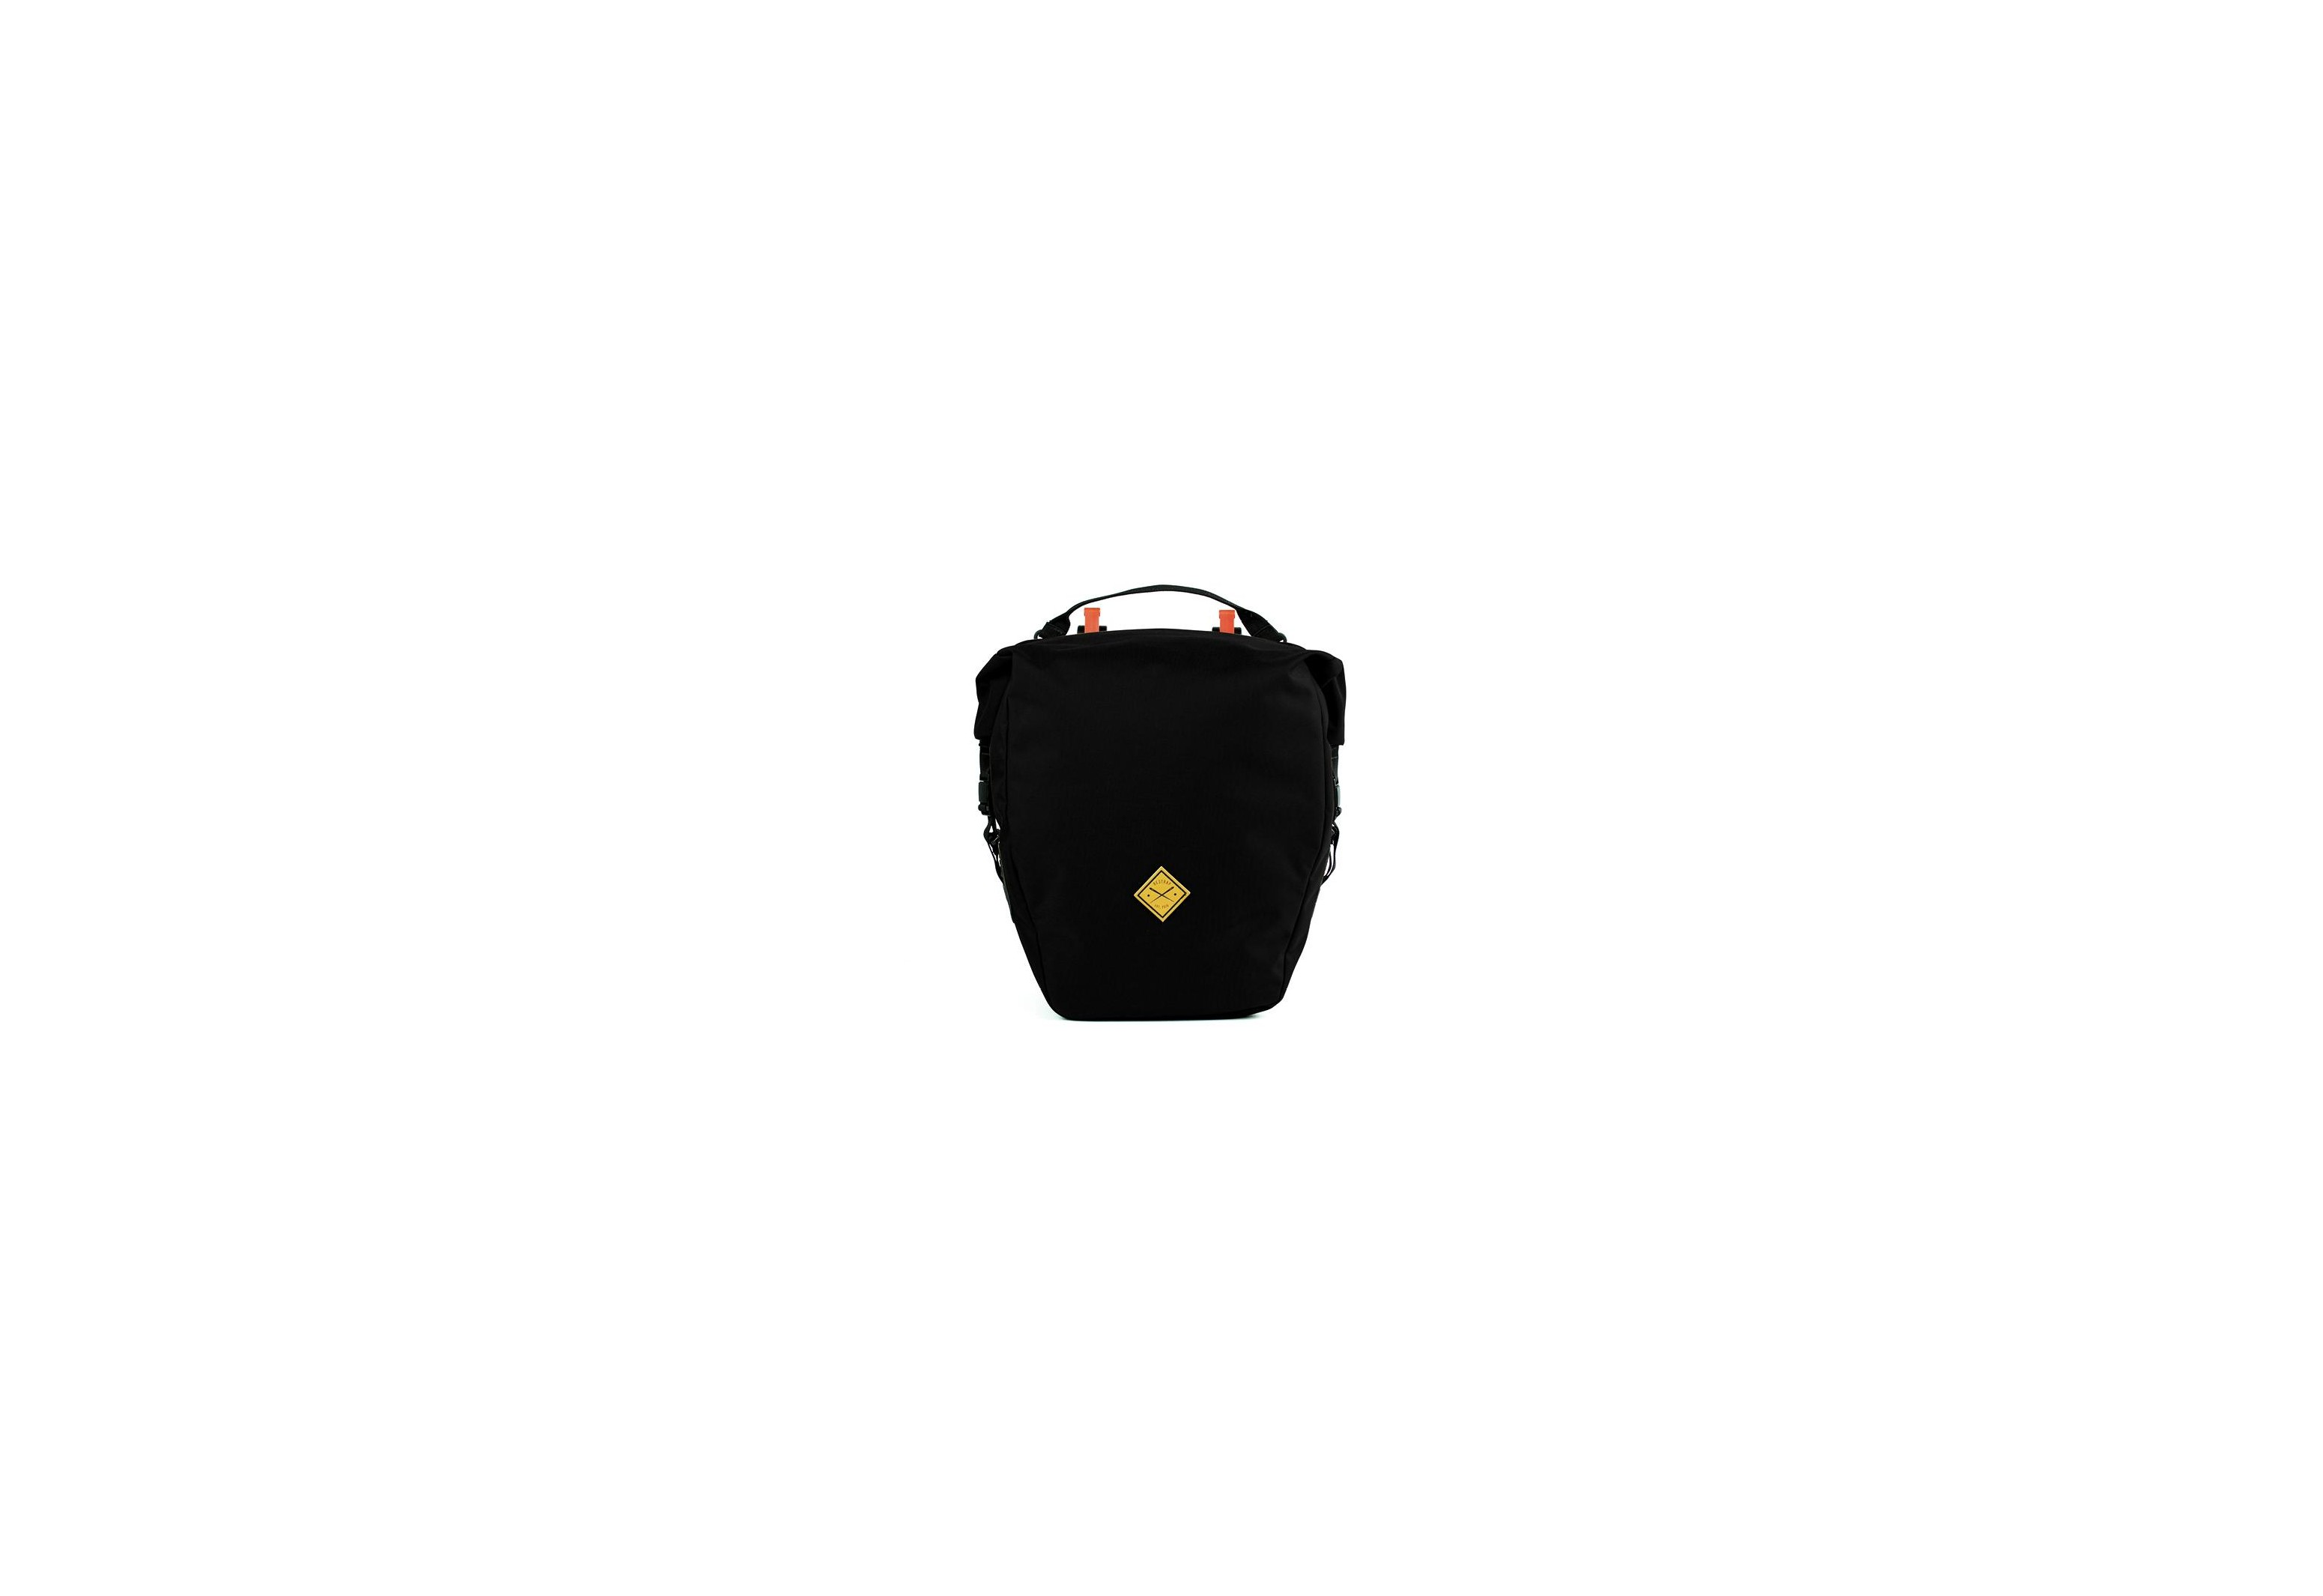 Sacoches Porte-bagages Restrap Large